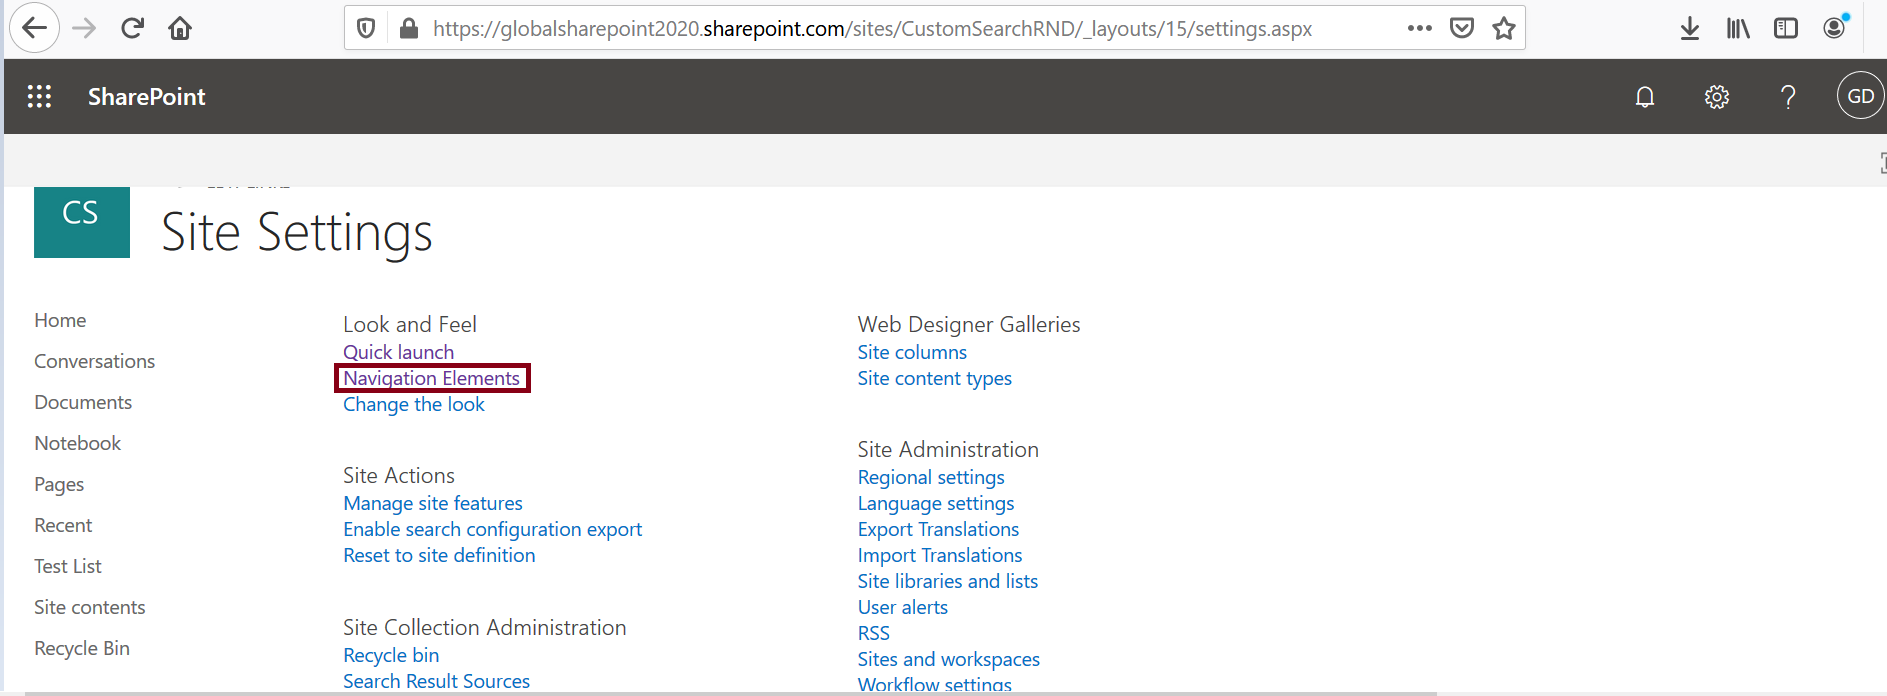 Navigation elements in site settings page - SharePoint look and feel